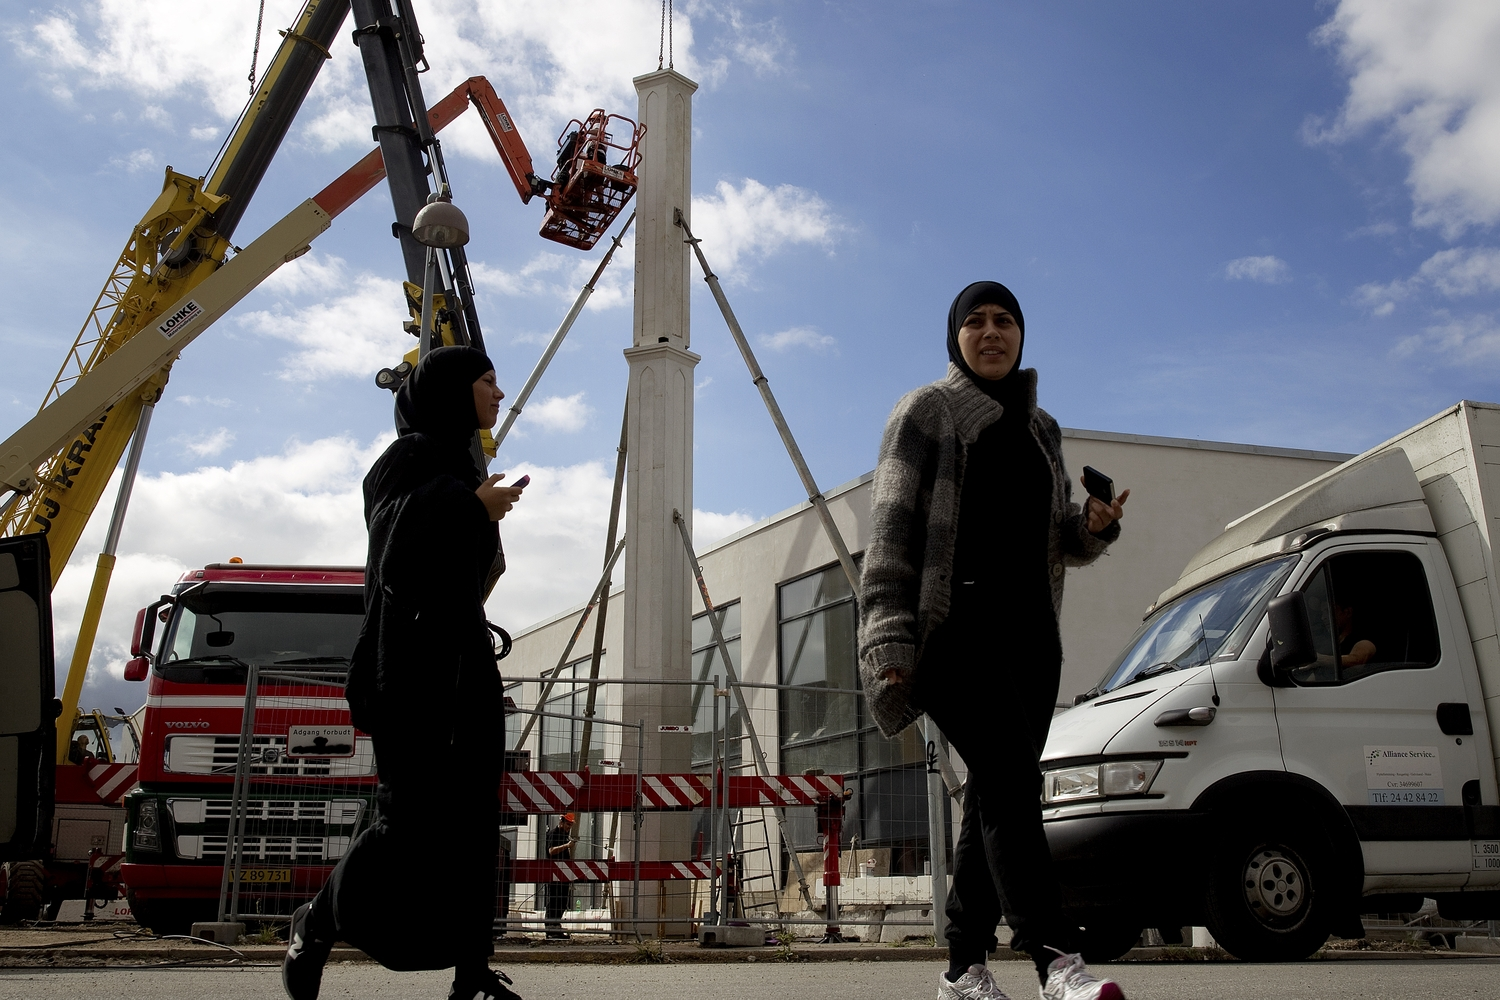 The Biggest Mega-Mosque in Scandinavia: Denmark Gets its First Minaret